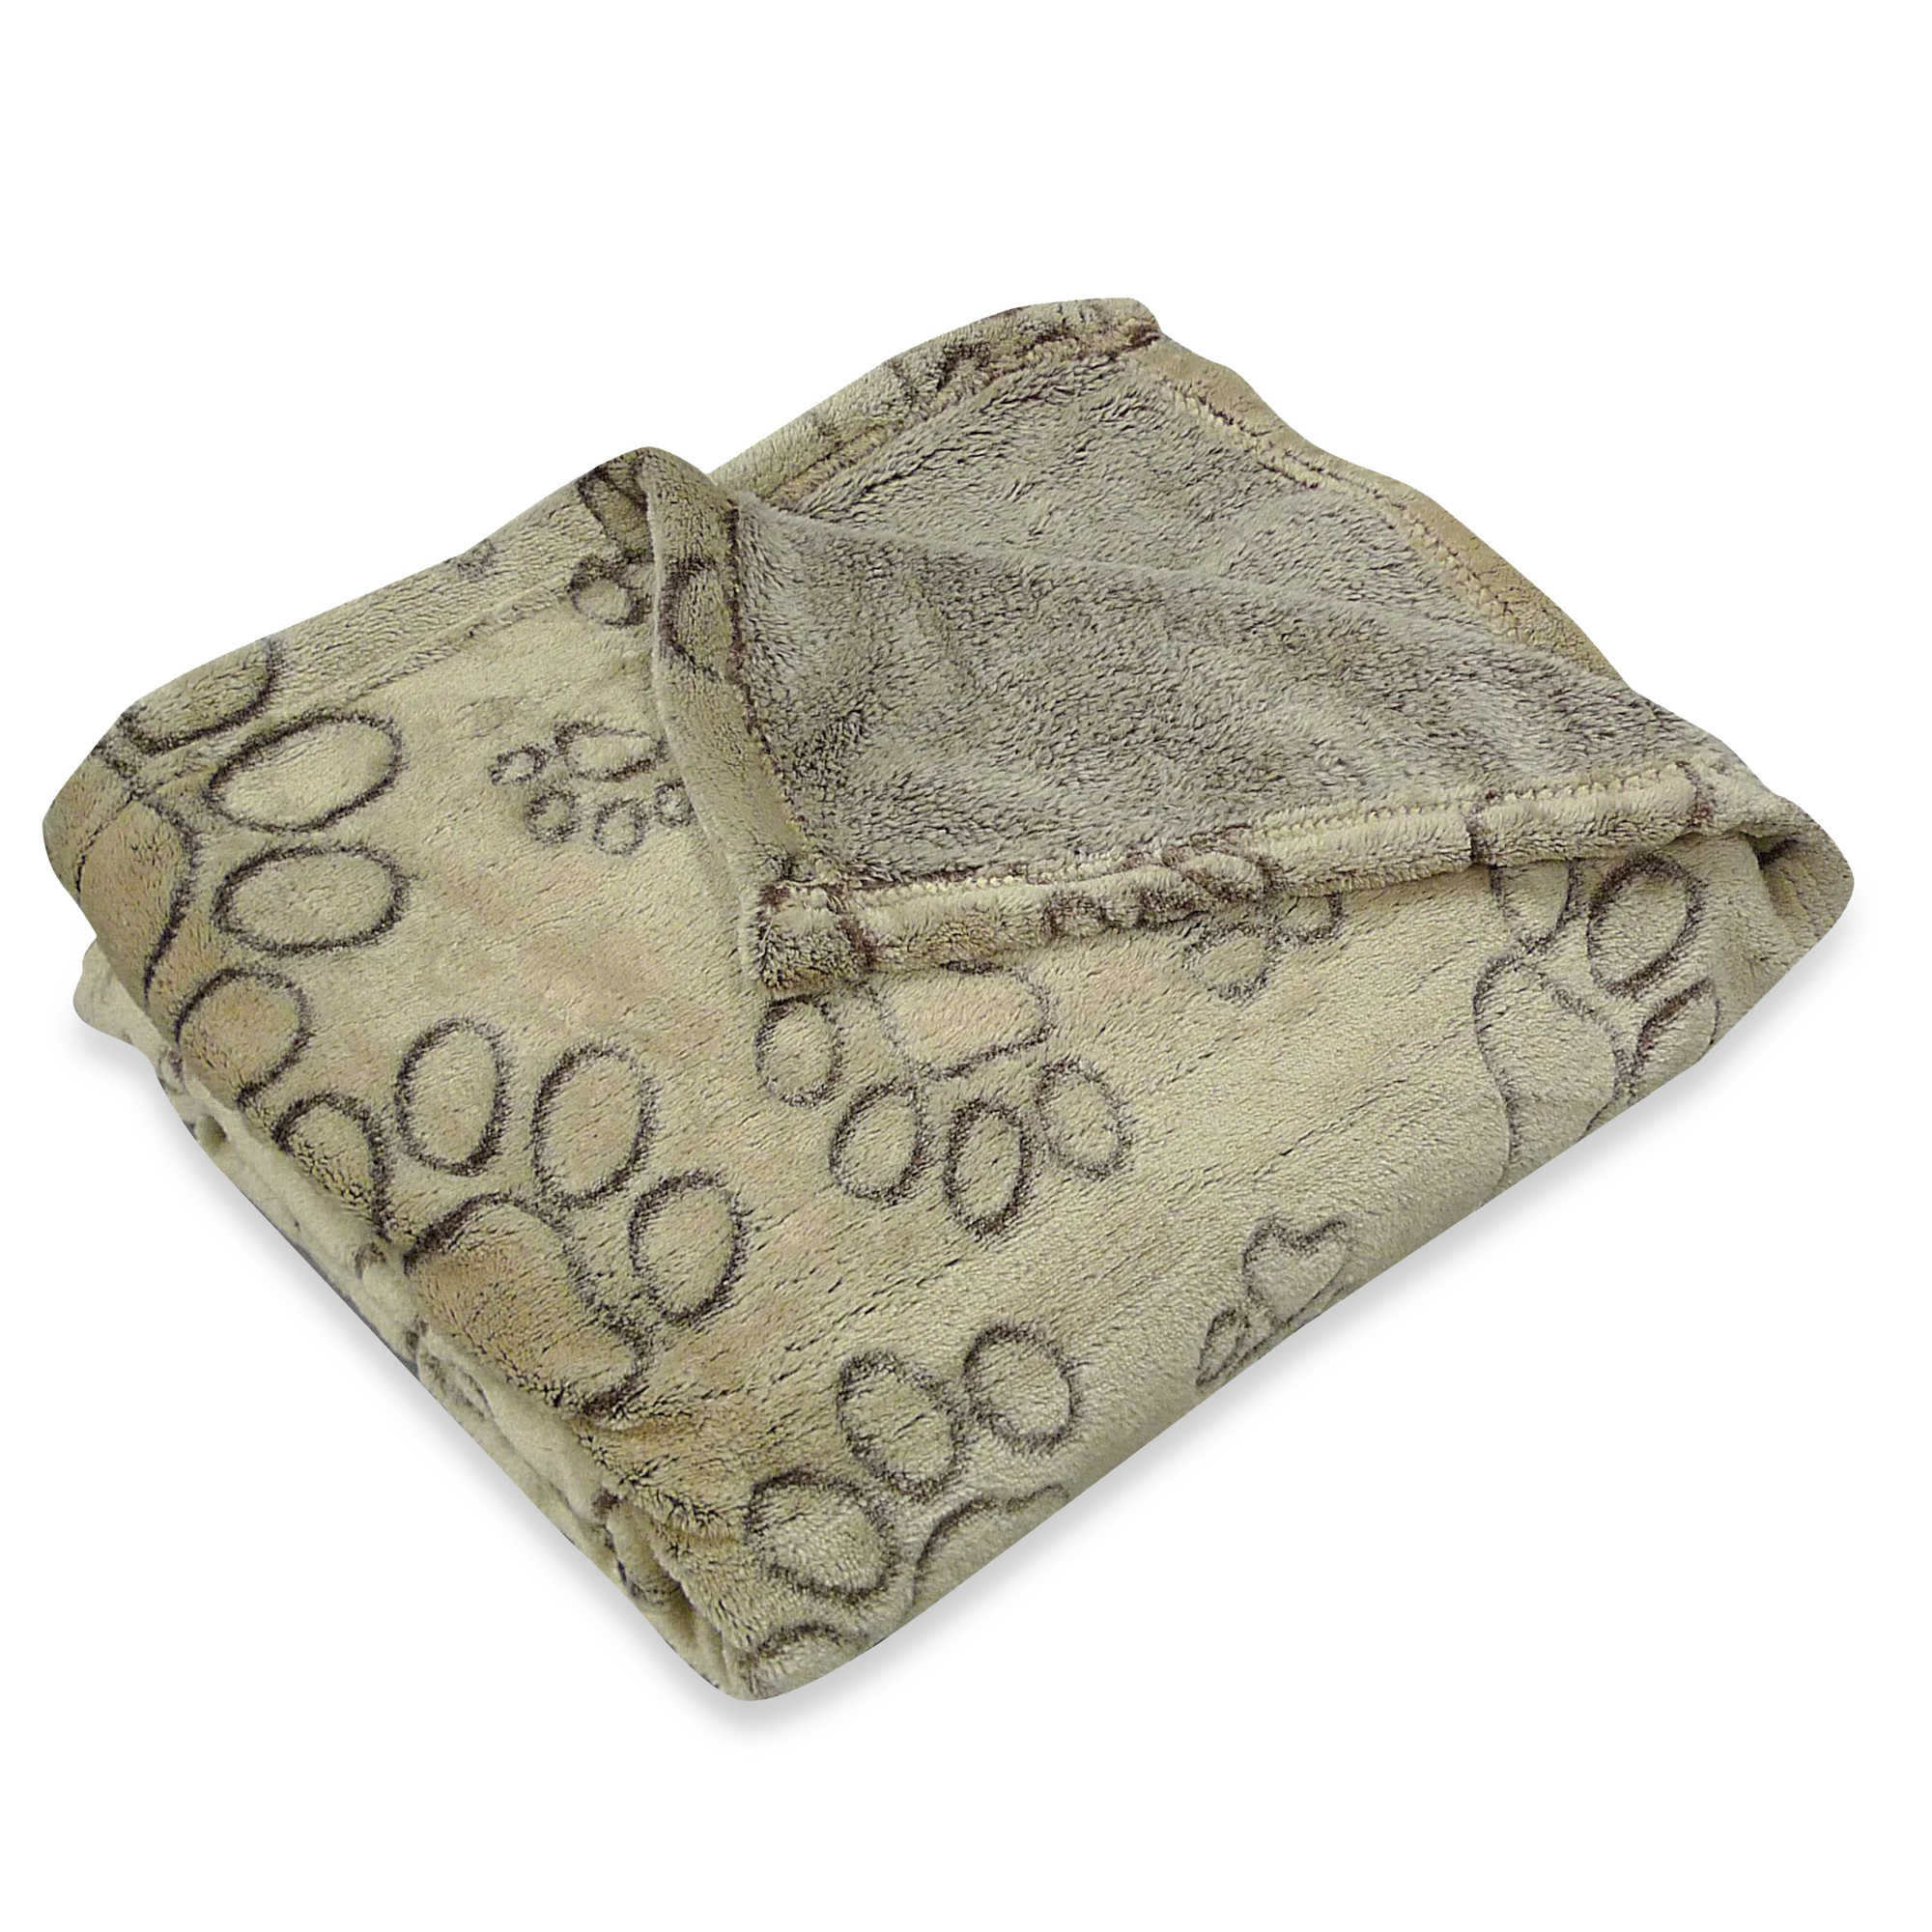 PawslifeTM Ultra Plush Embossed Paws Pet Blanket in Taupe